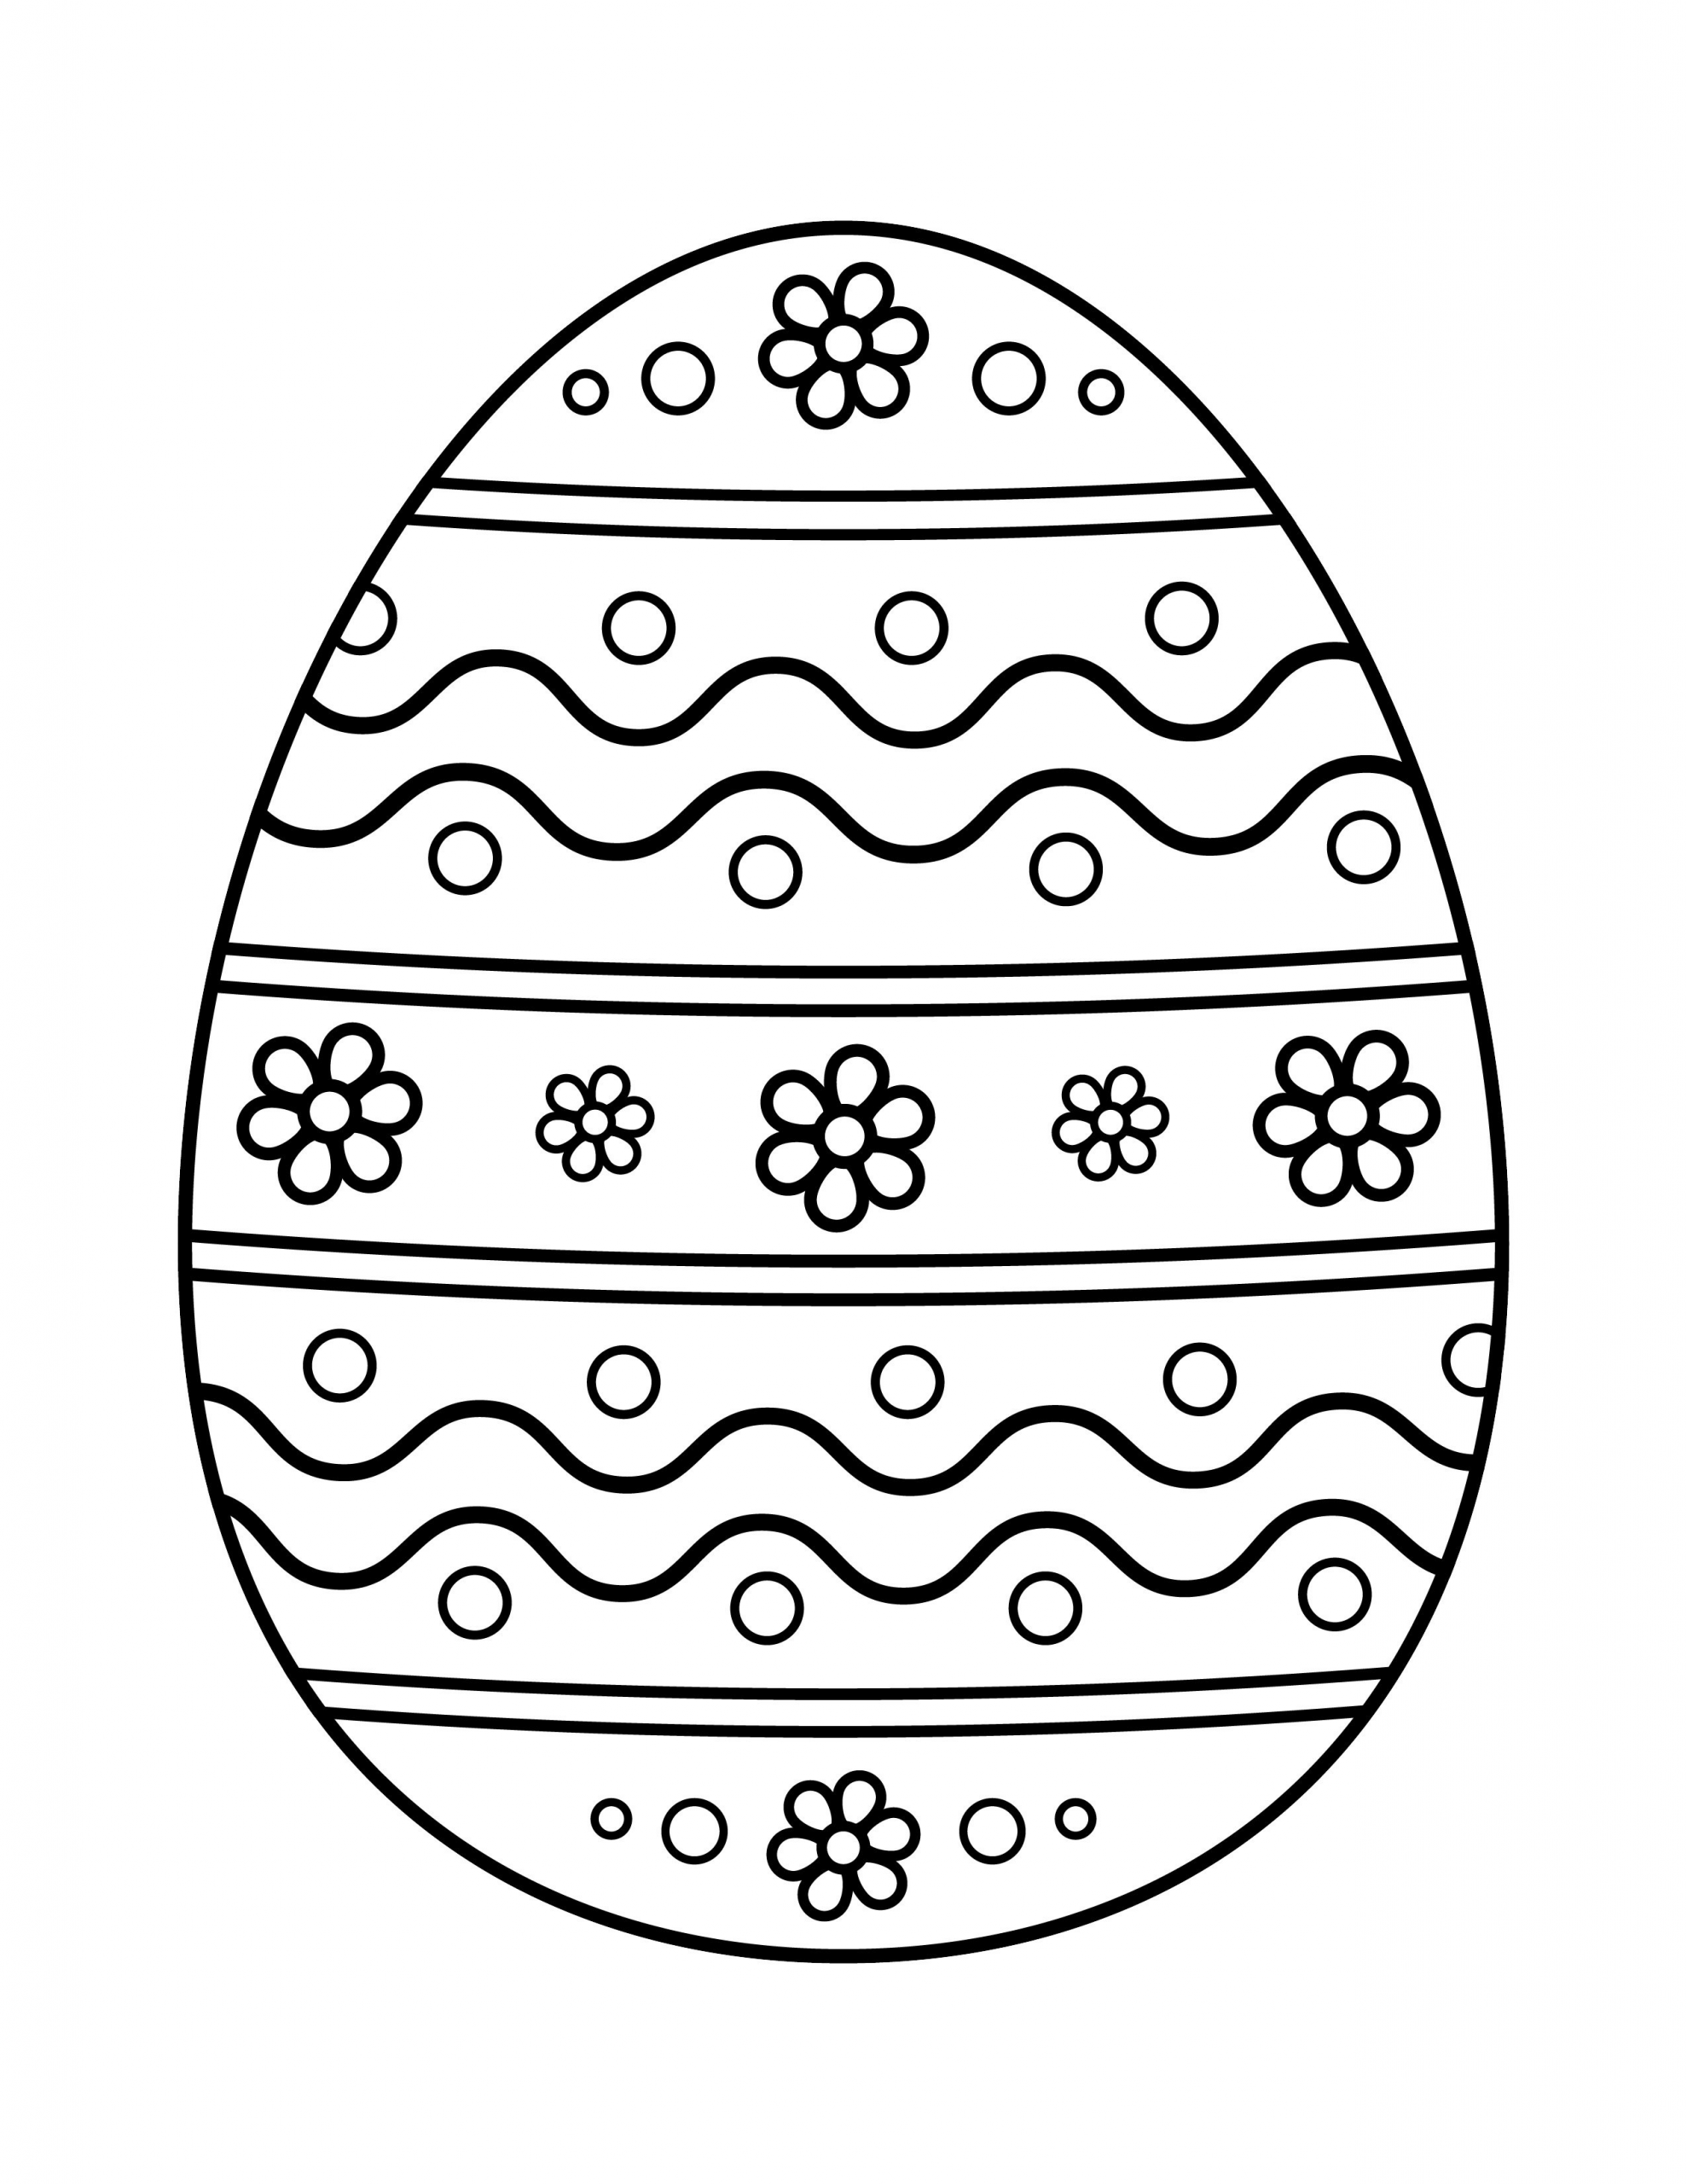 egg for colouring get this easter egg hard coloring pages for adults 56631 for egg colouring